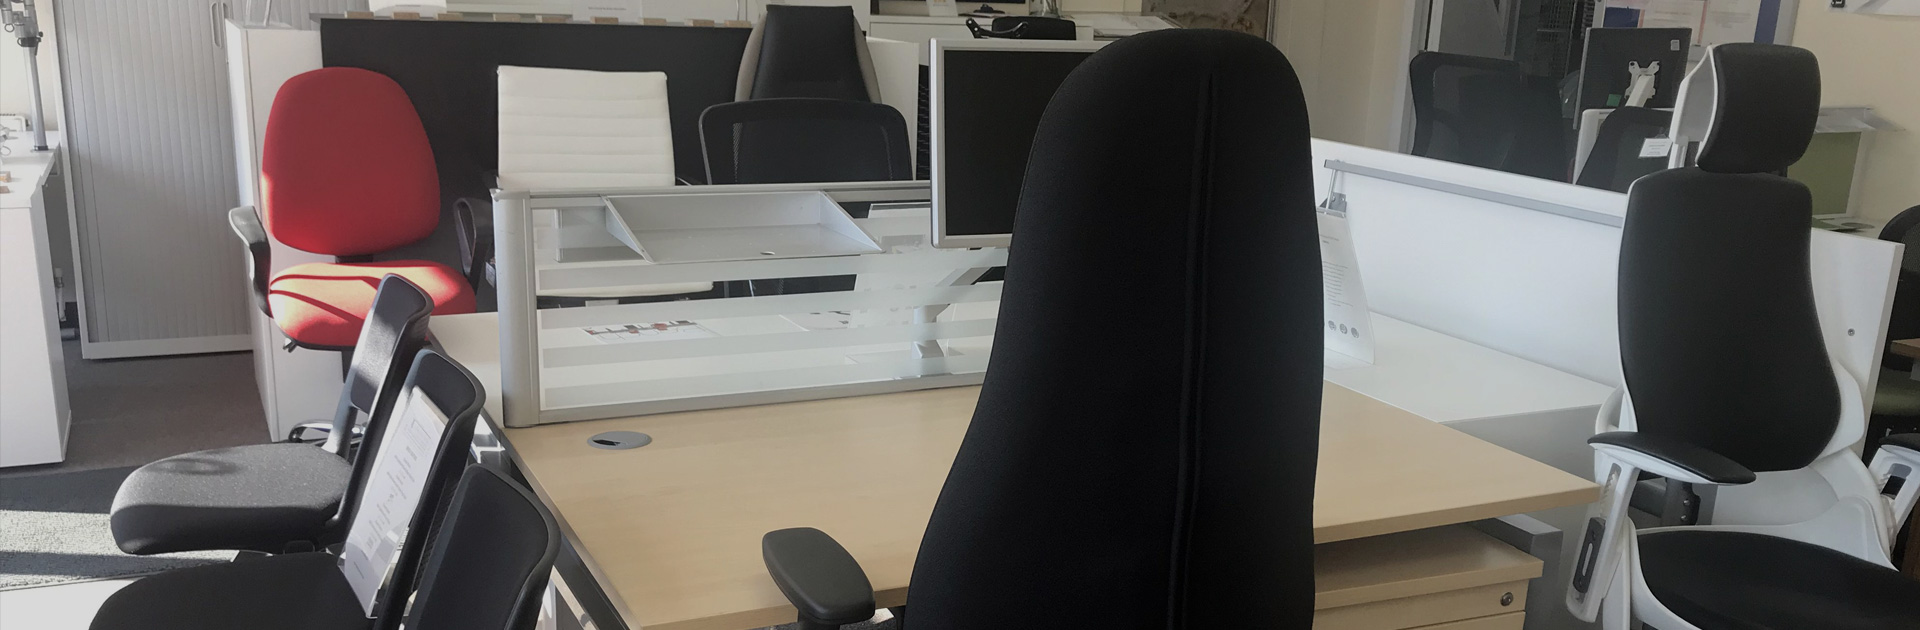 New Office Furniture London